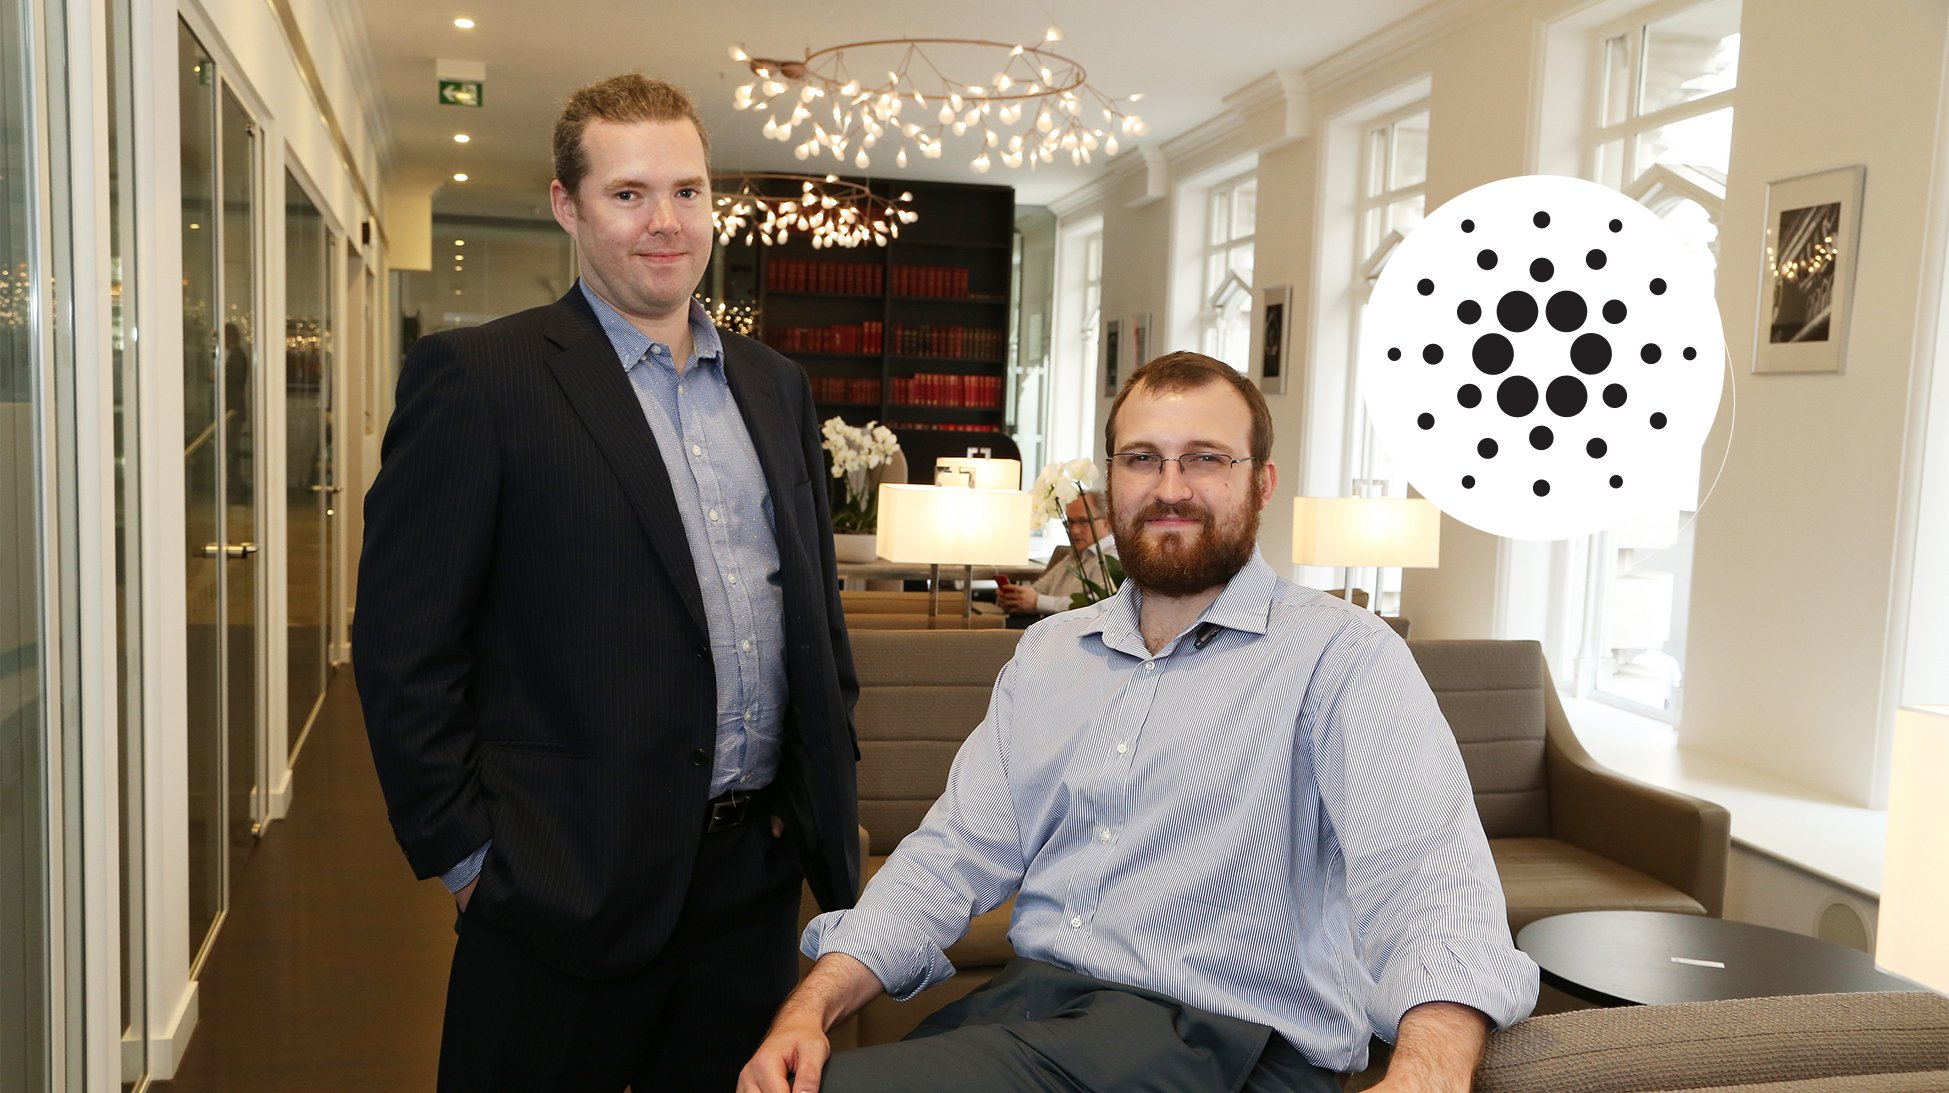 IOHK Launches Cardano Blockchain; Ada Now Trading on Bittrex